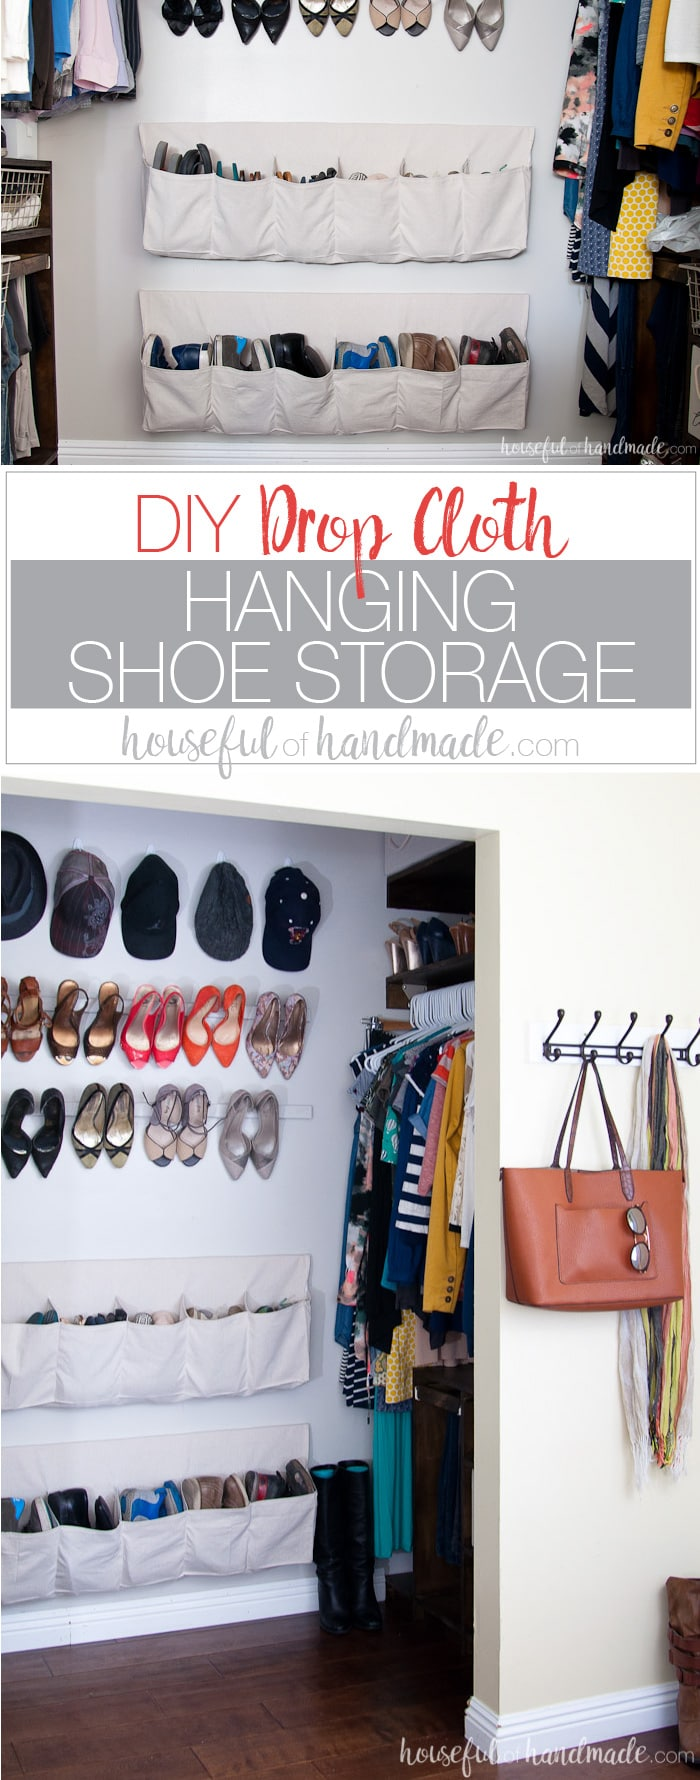 This Drop Cloth Hanging Shoe Storage Will Keep Your Closet Clean And All  Your Shoes Organized